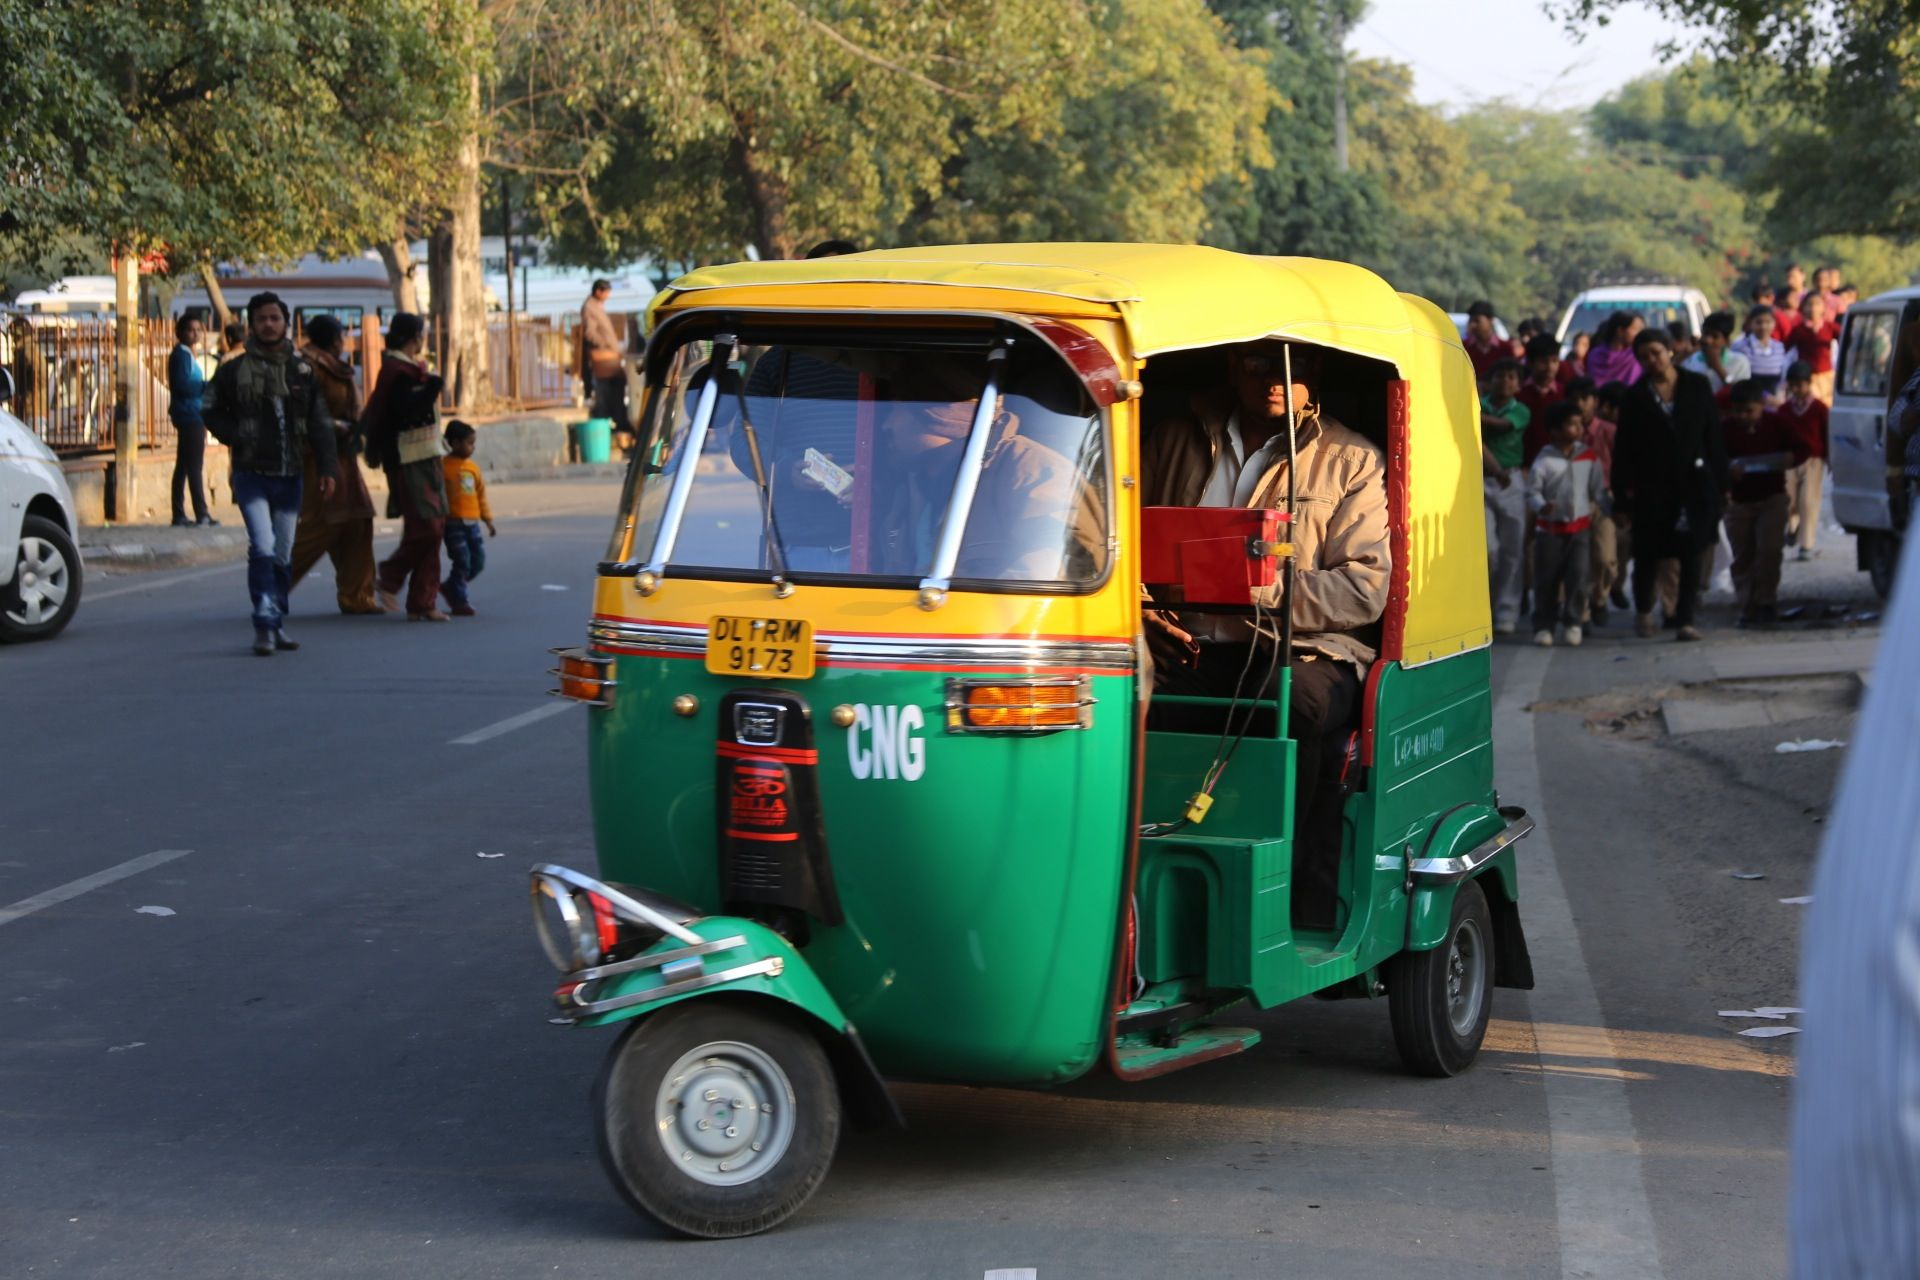 essay on improving public transport in india Free essays on essays on advantages and disadvantages of public transport get help with your writing 1 through 30.